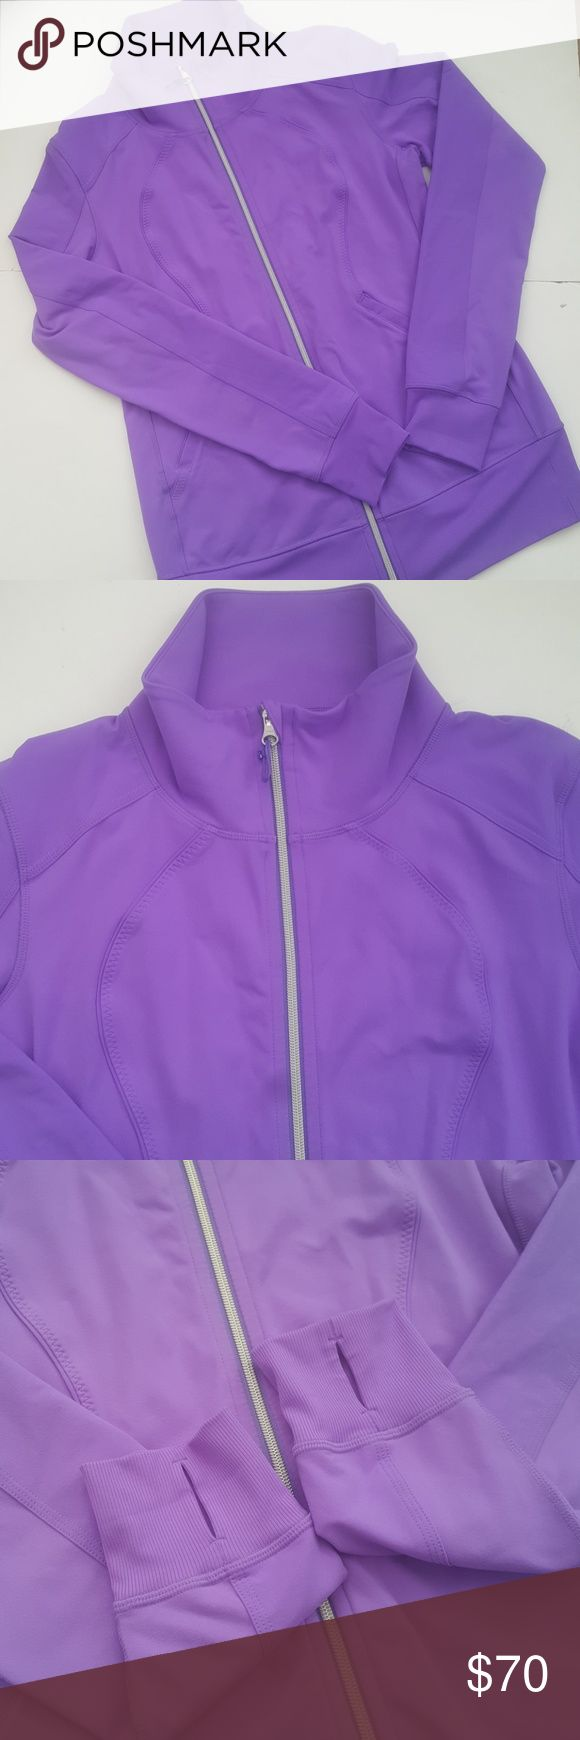 """Lululemon Dark Pastel Purple Zip Up Jacket Form fitting jacket. Thumb holes. Zippered front pockets. No size dot or hang tag. Measurements are consistent with a 10/Large. No condition issues. Dark spot seen in some photos is a shadow from my phones cracked camera. Bust 19"""" Length 27 1/2"""" lululemon athletica Jackets & Coats"""